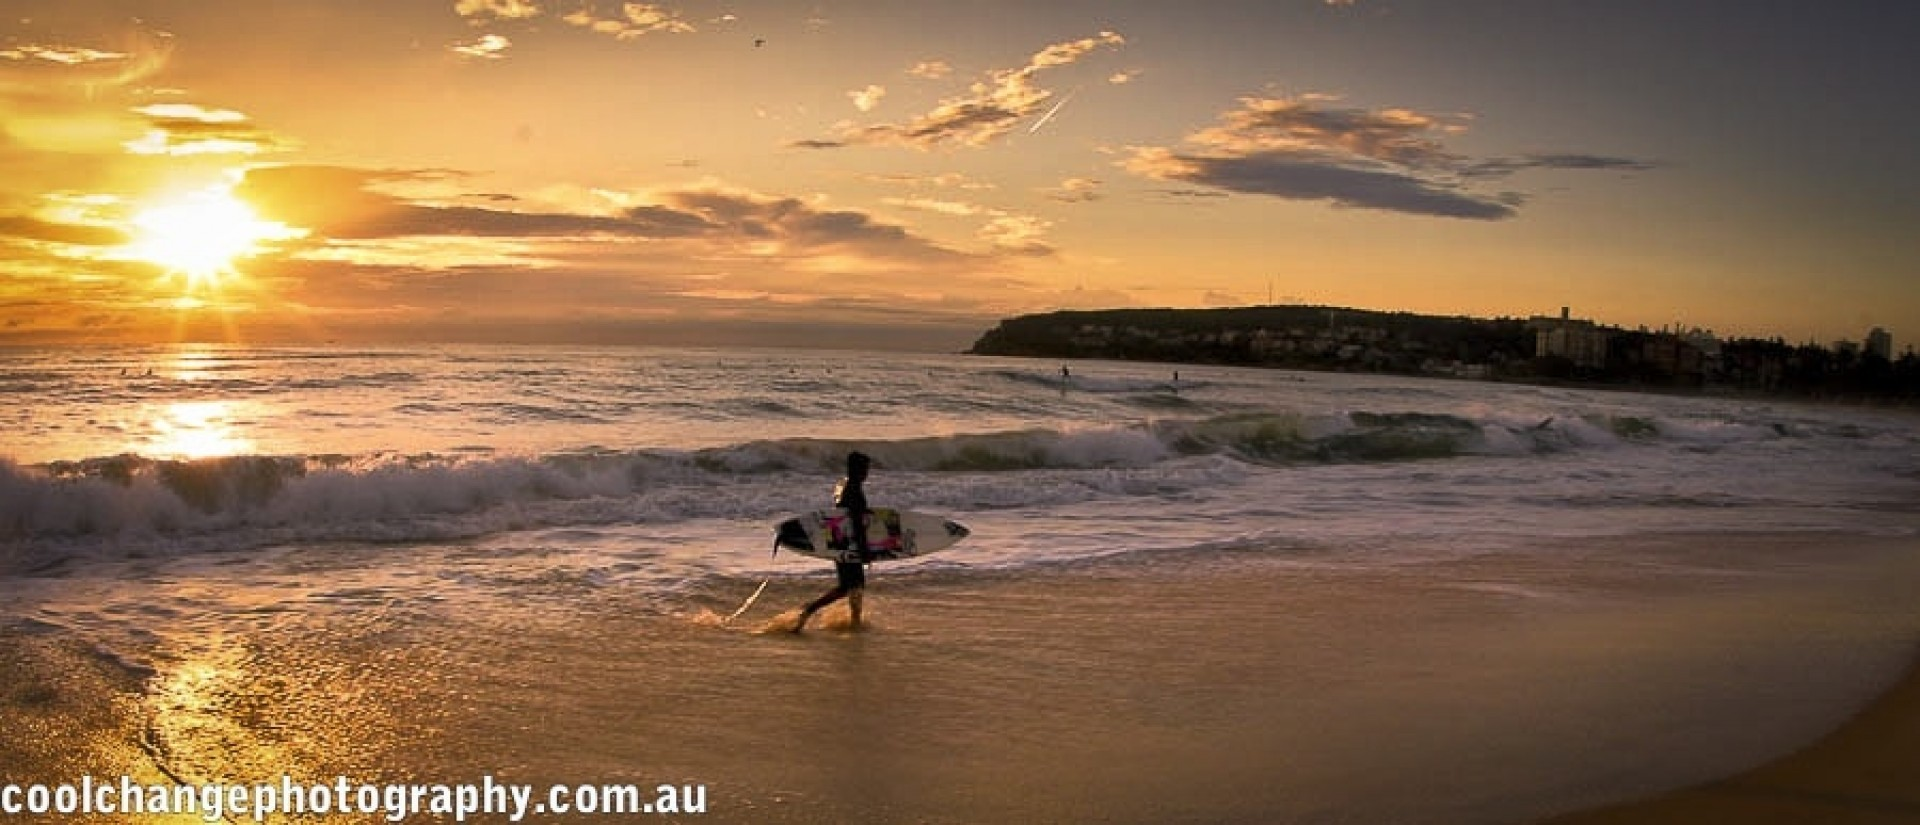 Jason Brown's photo of Sydney (Manly)